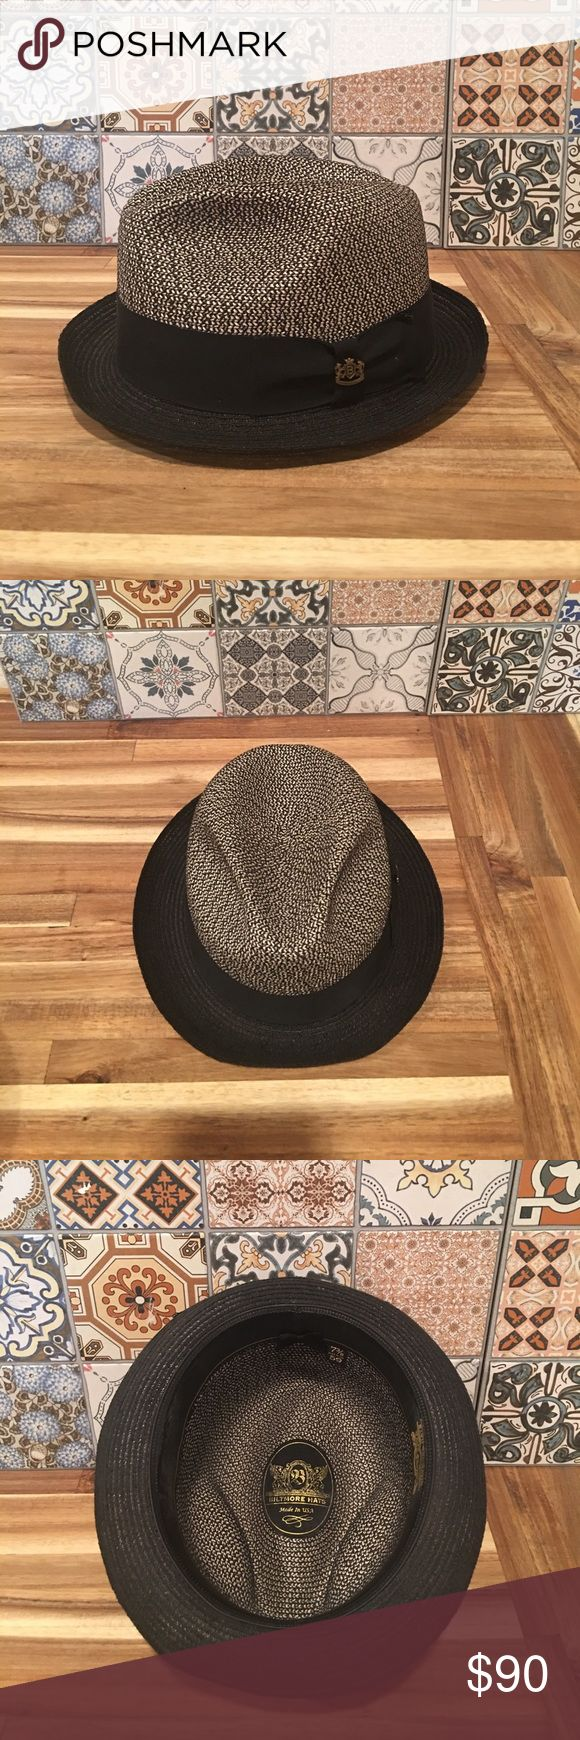 ⭐️Biltmore Madrid Panama Hat Two toned Biltmore hat perfect for summer, but wearable anytime of year! 7 3/8 size. It's technically a men's hat, but would look good on anyone! It's gently used and stored so there's no damage. Biltmore Accessories Hats